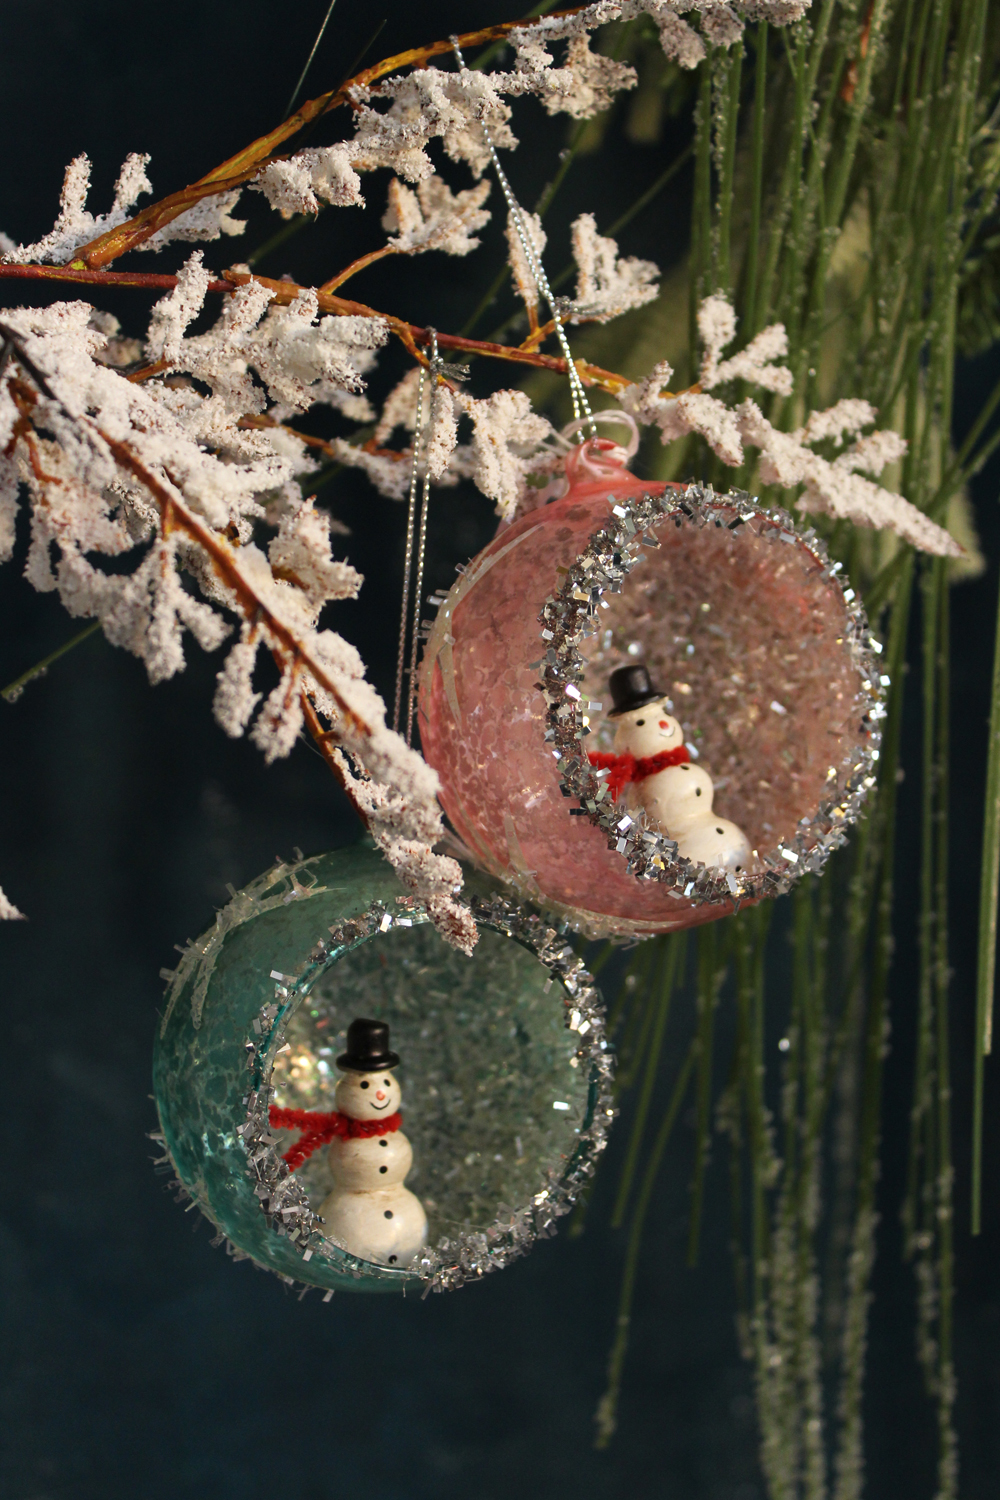 Day 01_Snowman Ornament 02.jpg